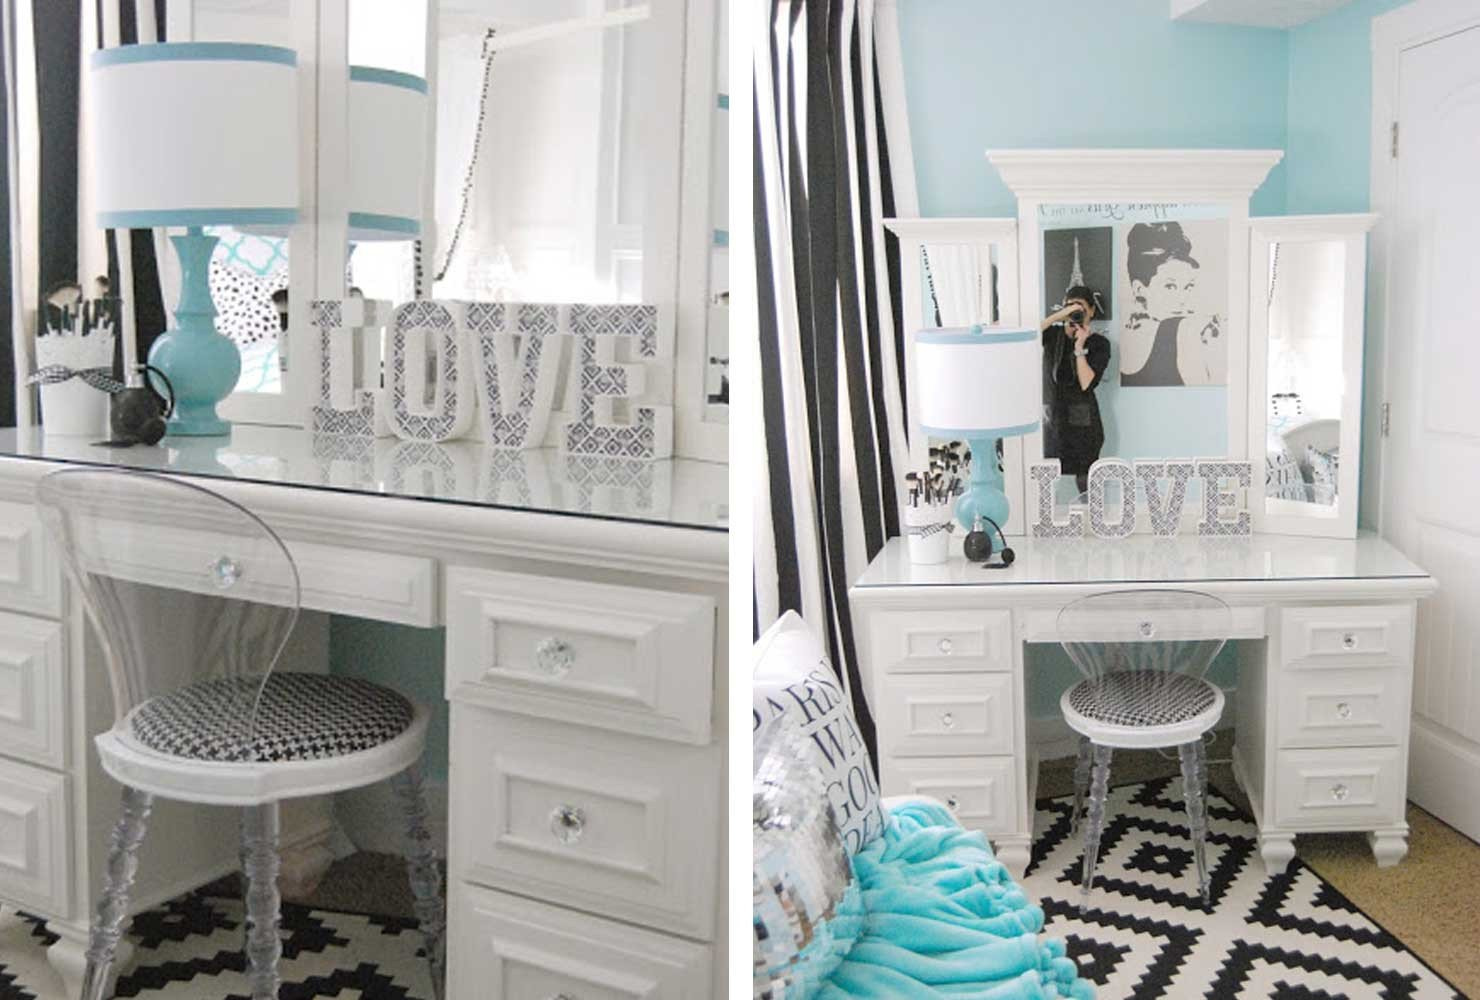 Room Decor Ideas for Teens Beautiful 26 Diy Teen Room Decor Ideas to Personalize Any Space